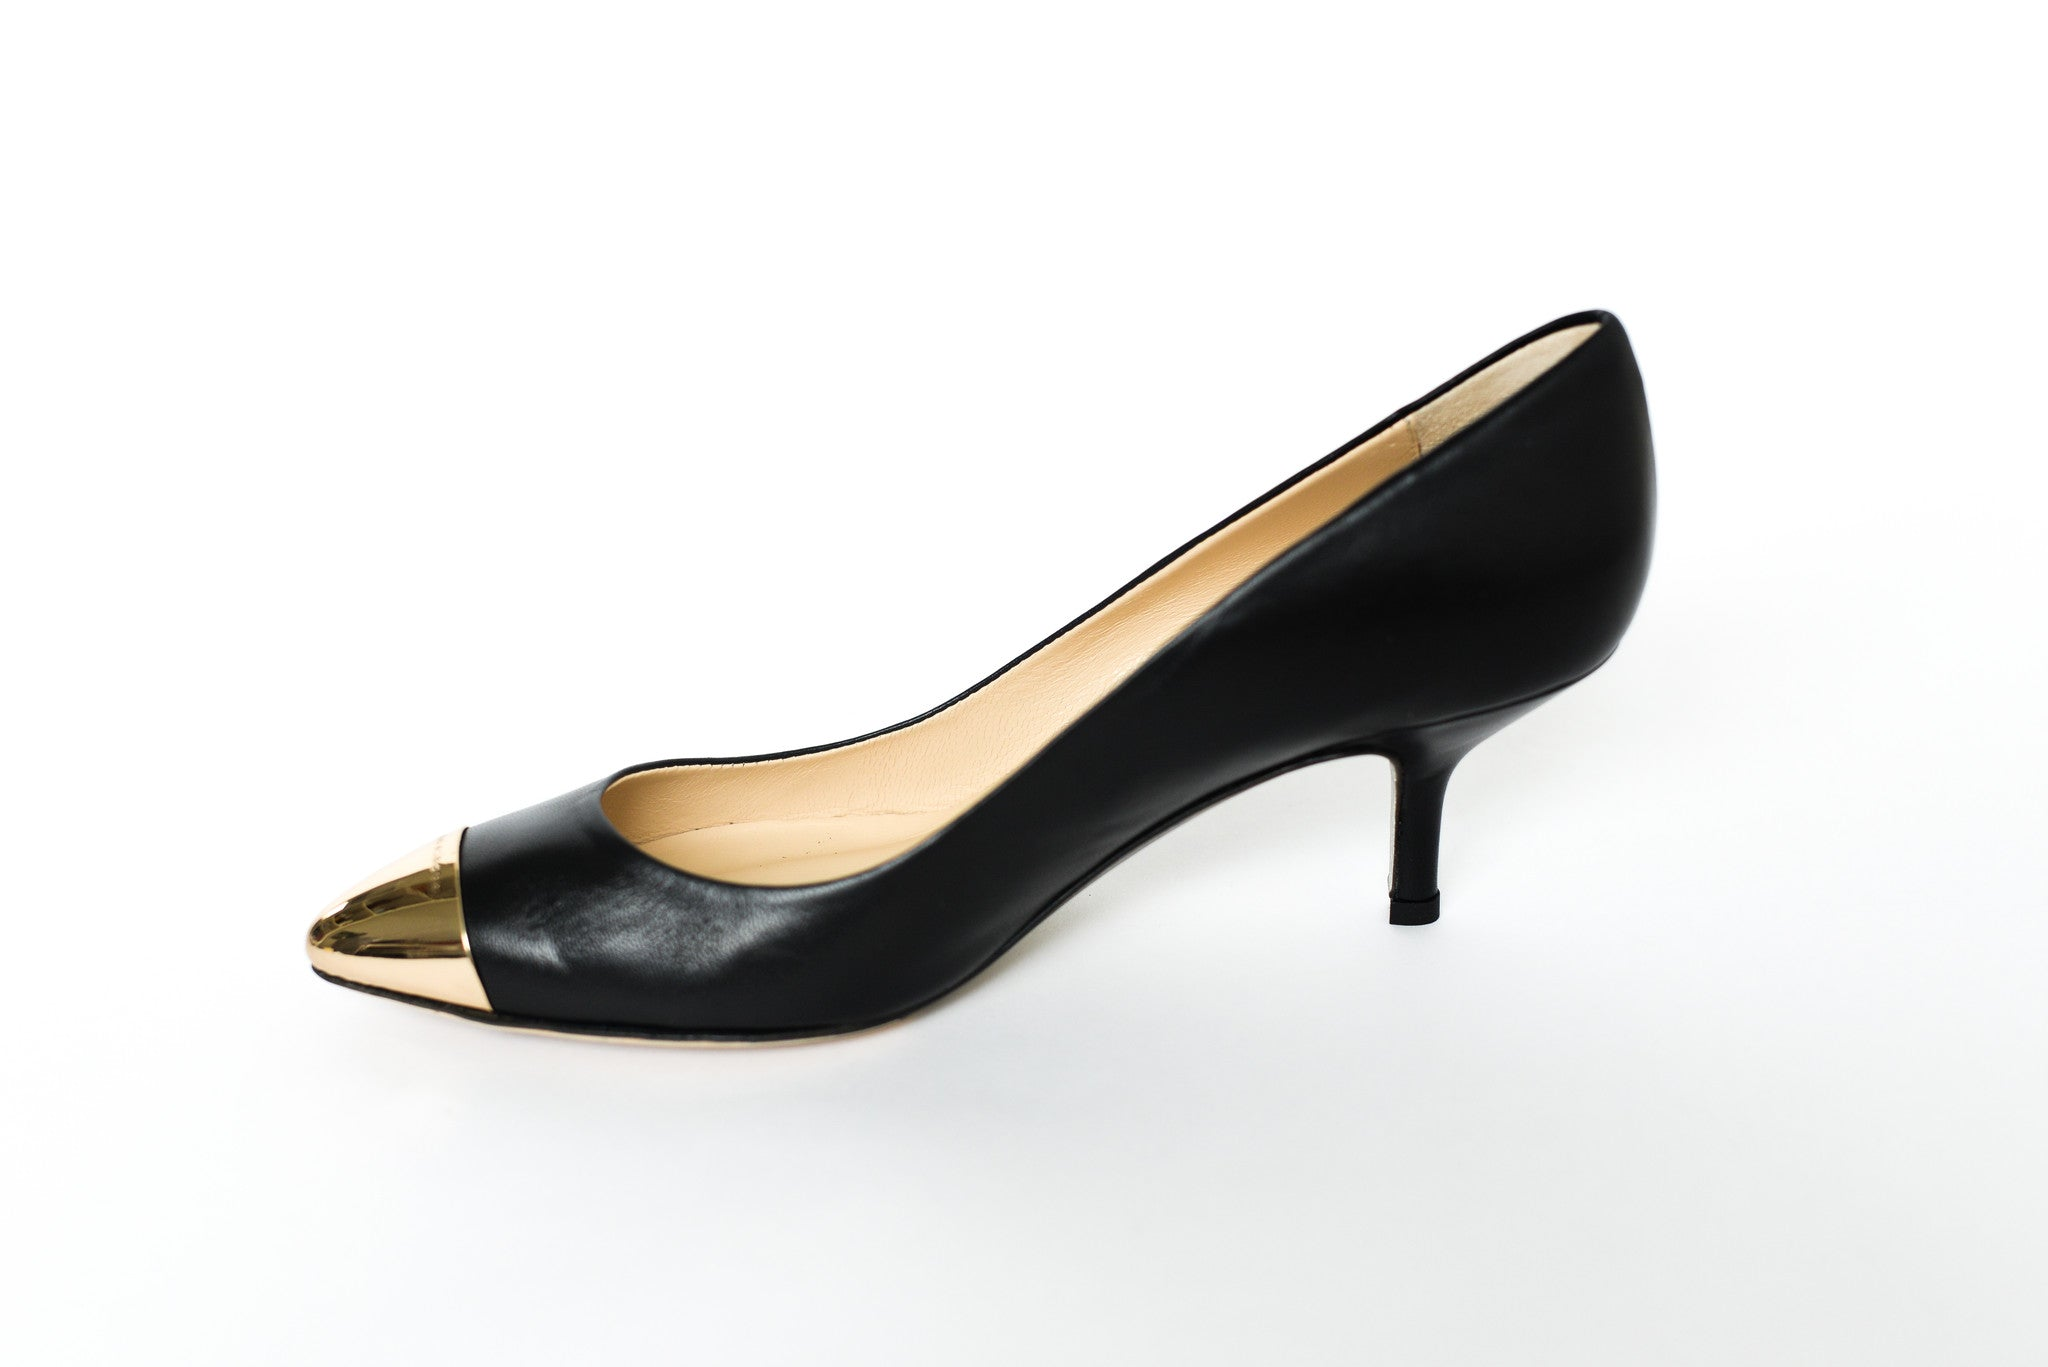 Fabio Rusconi Black Leather Pointed Heels with Gold Metal Toe Cap